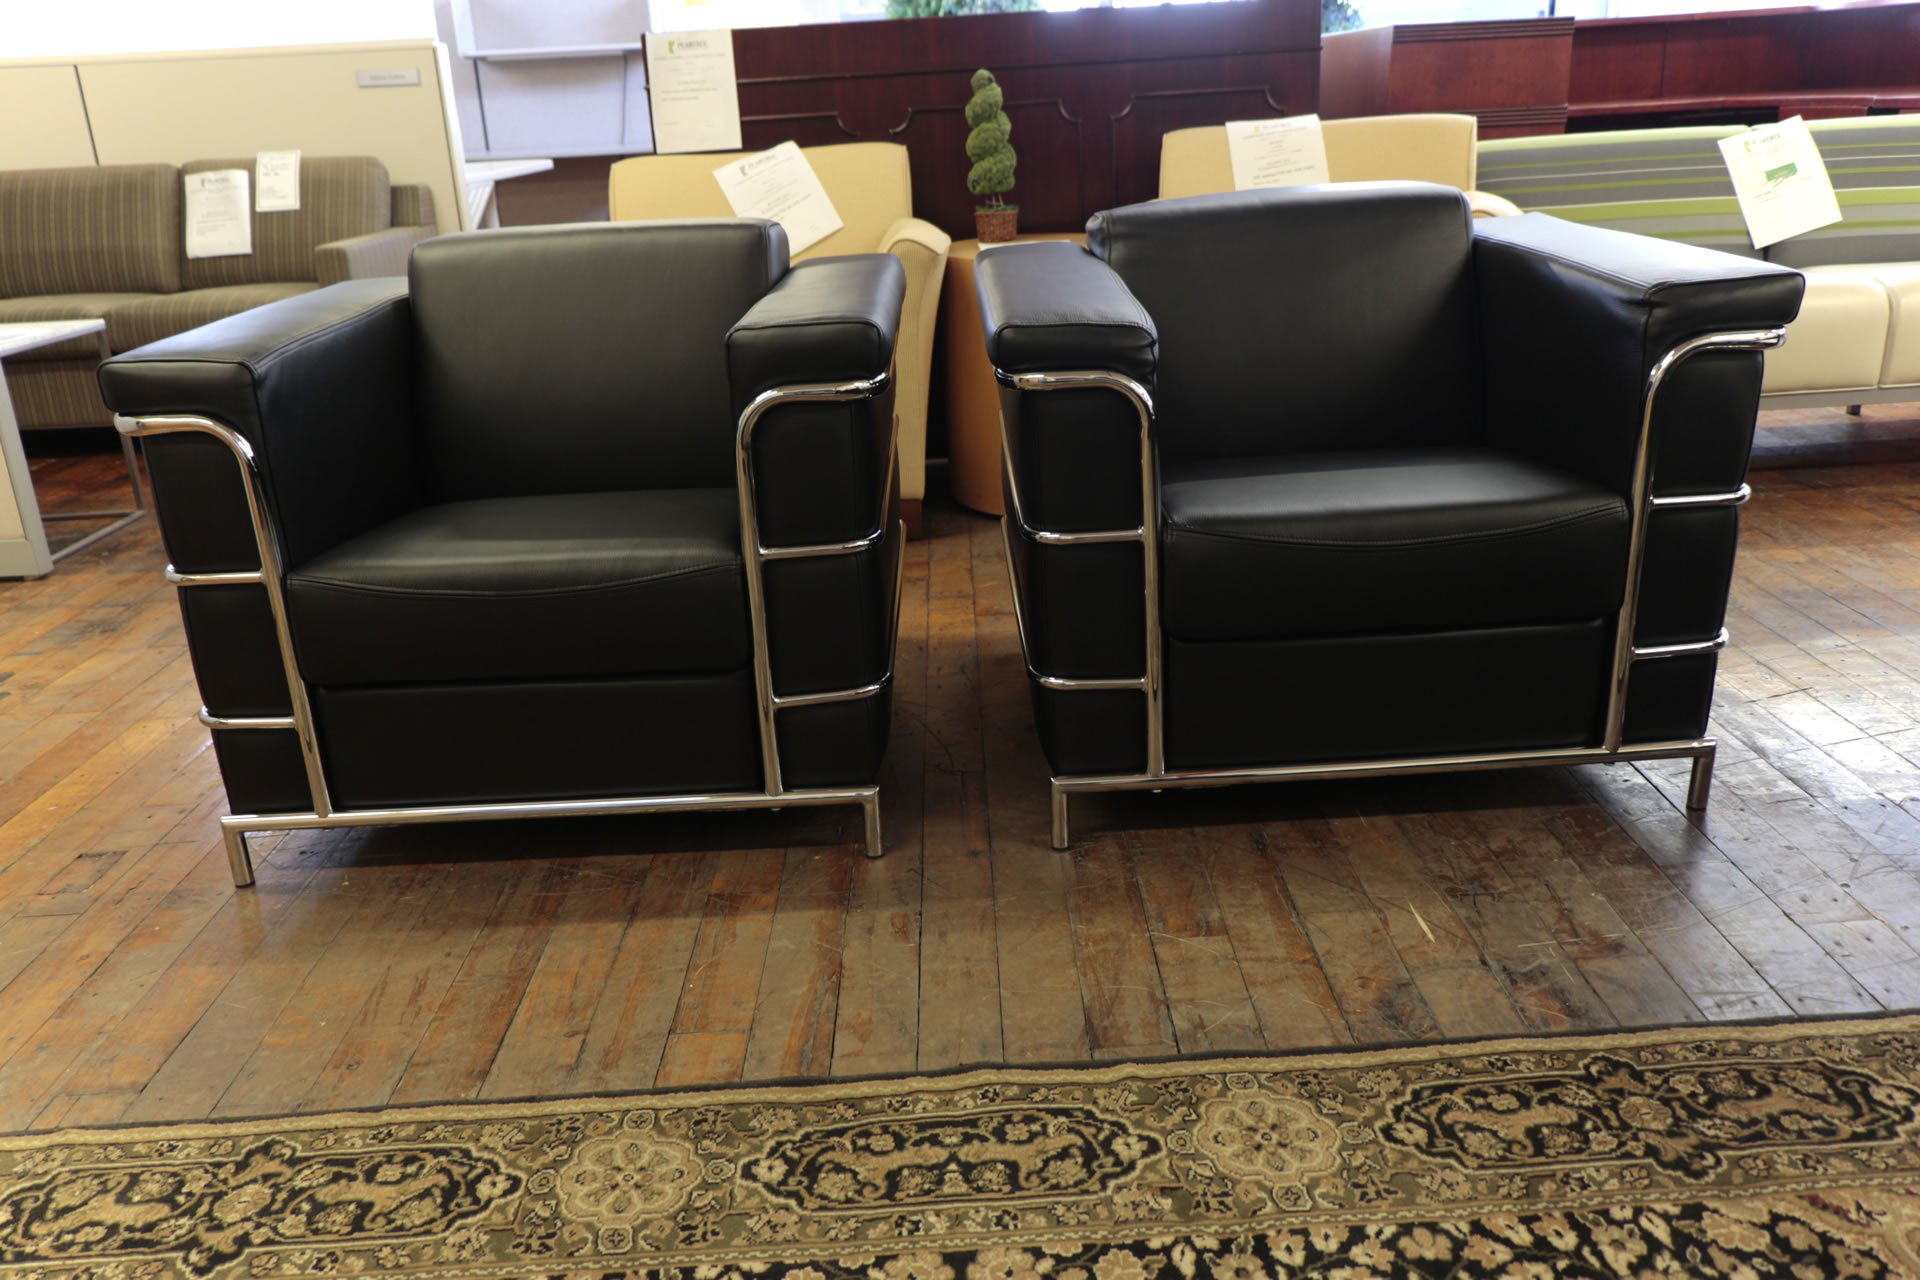 peartreeofficefurniture_peartreeofficefurniture_mg_4876.jpg